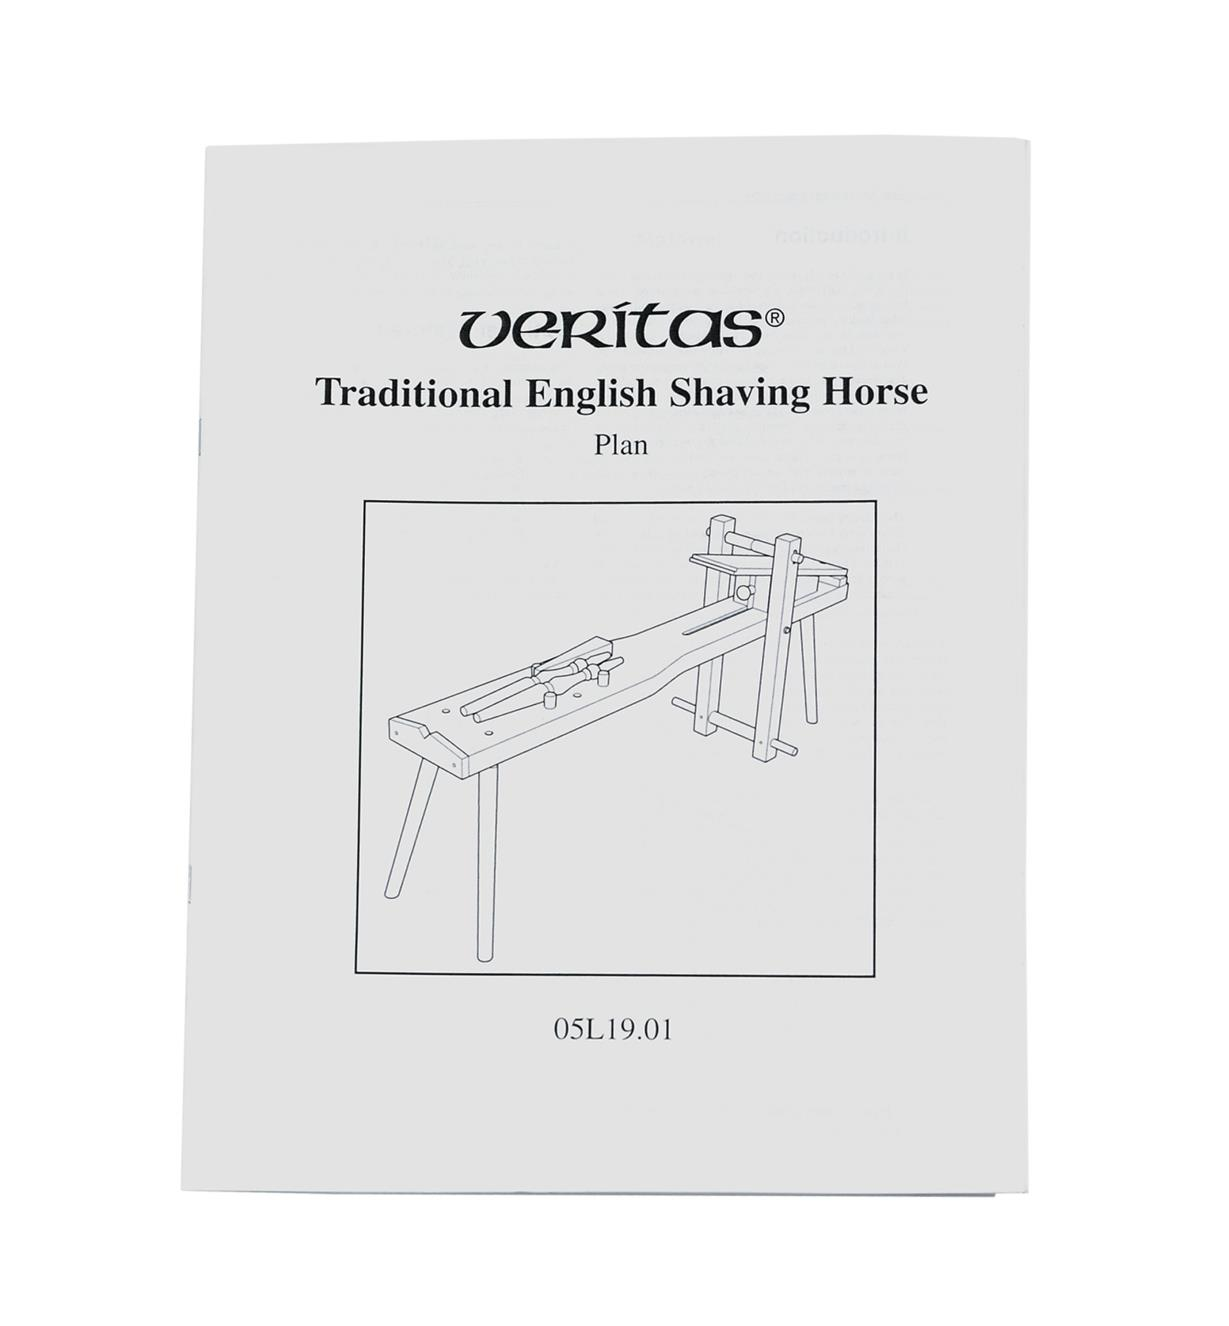 05L1901 - Veritas Shaving Horse Plan